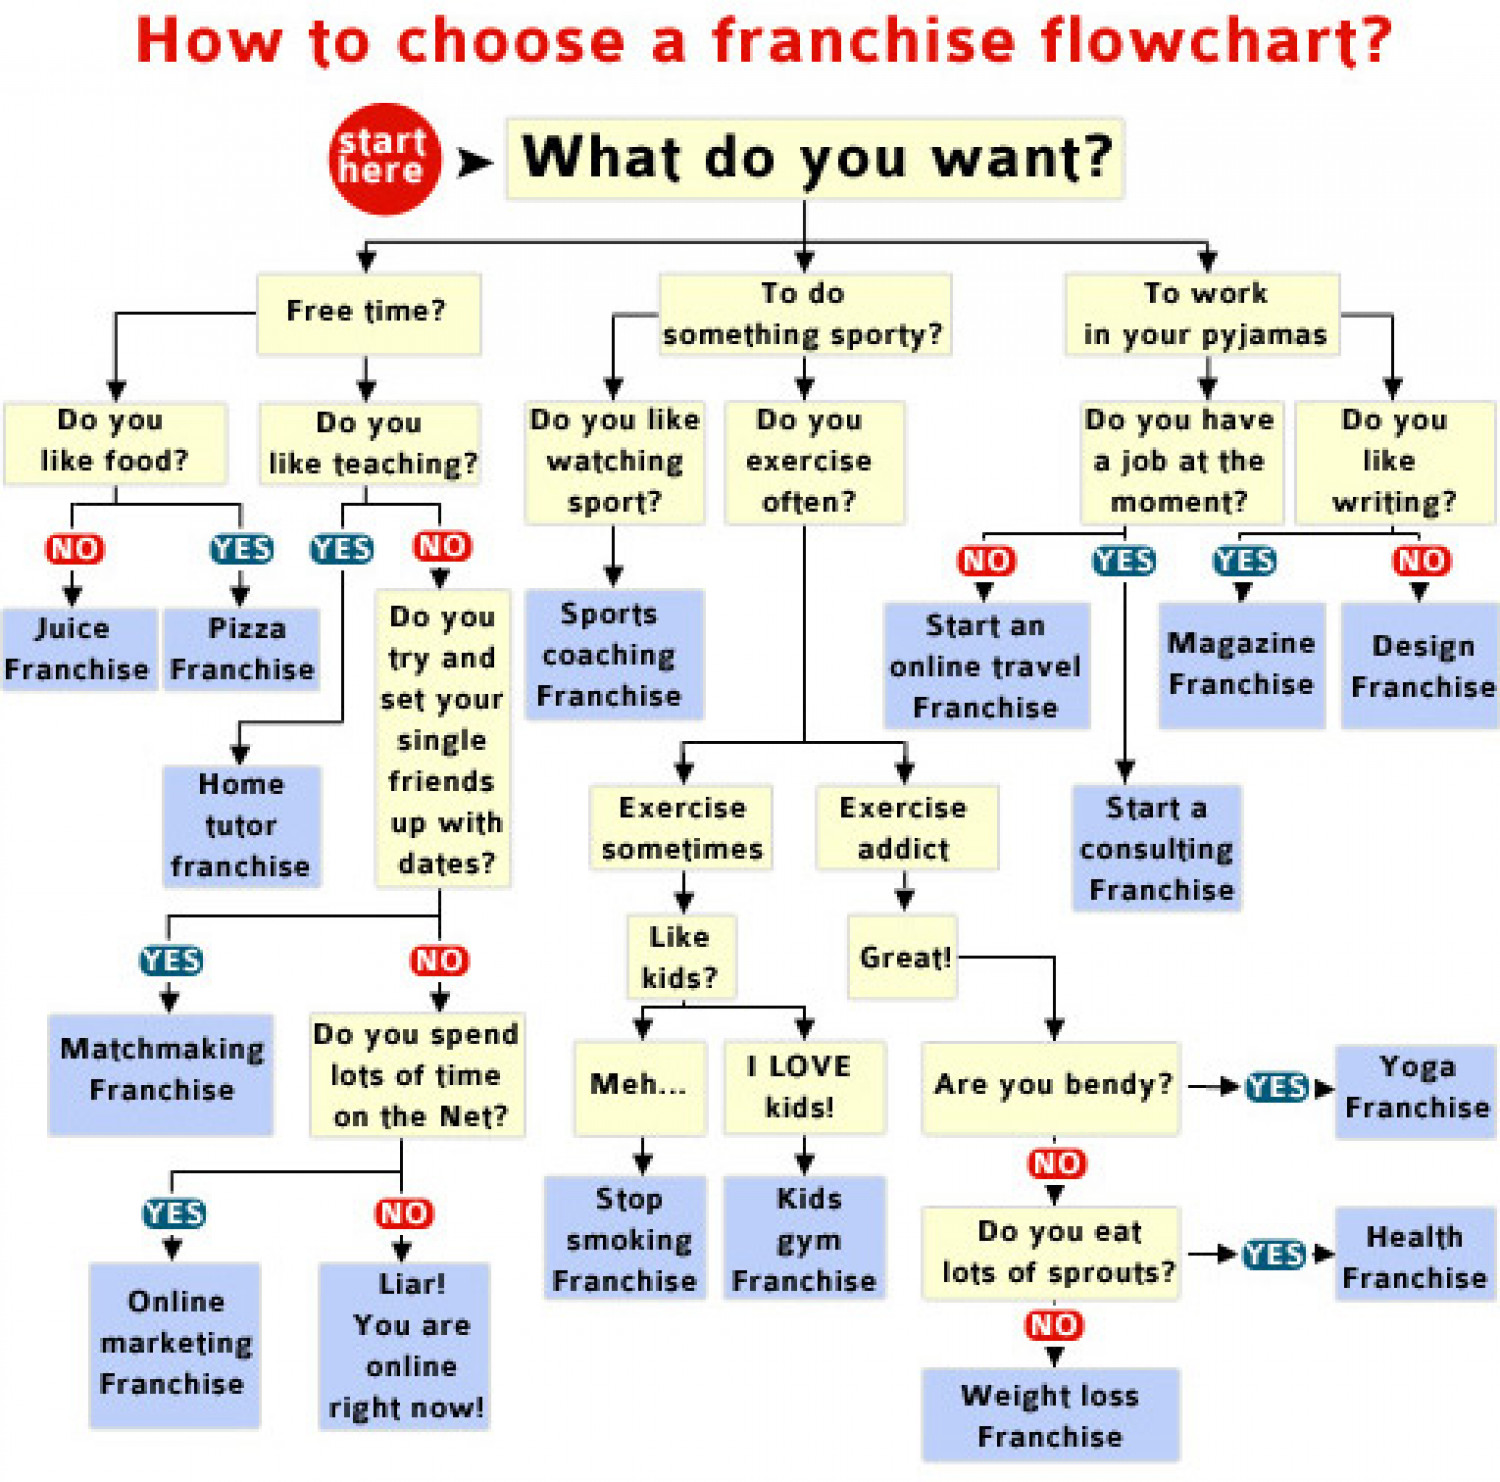 Choosing a franchise flowchart Infographic